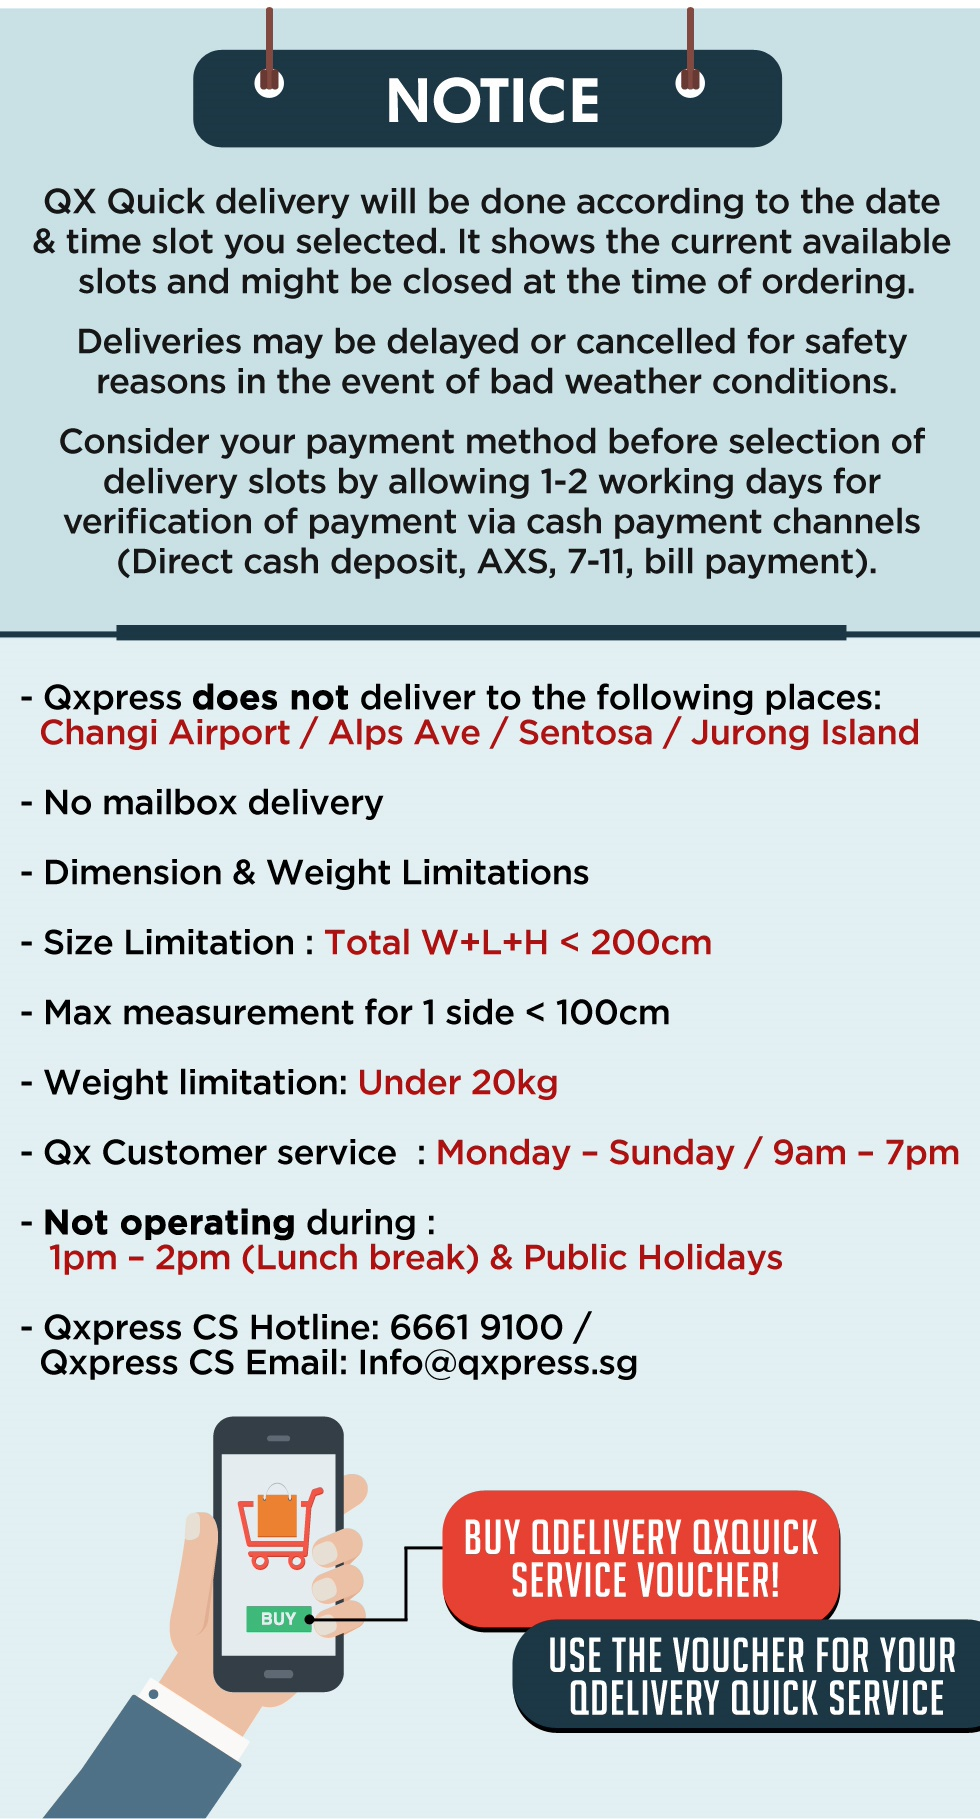 fd58d10e928 Qx Quick Service Voucher [ Value S$ 9.99 / Up to 20 kg] Only for Local  Delivery (Singapor